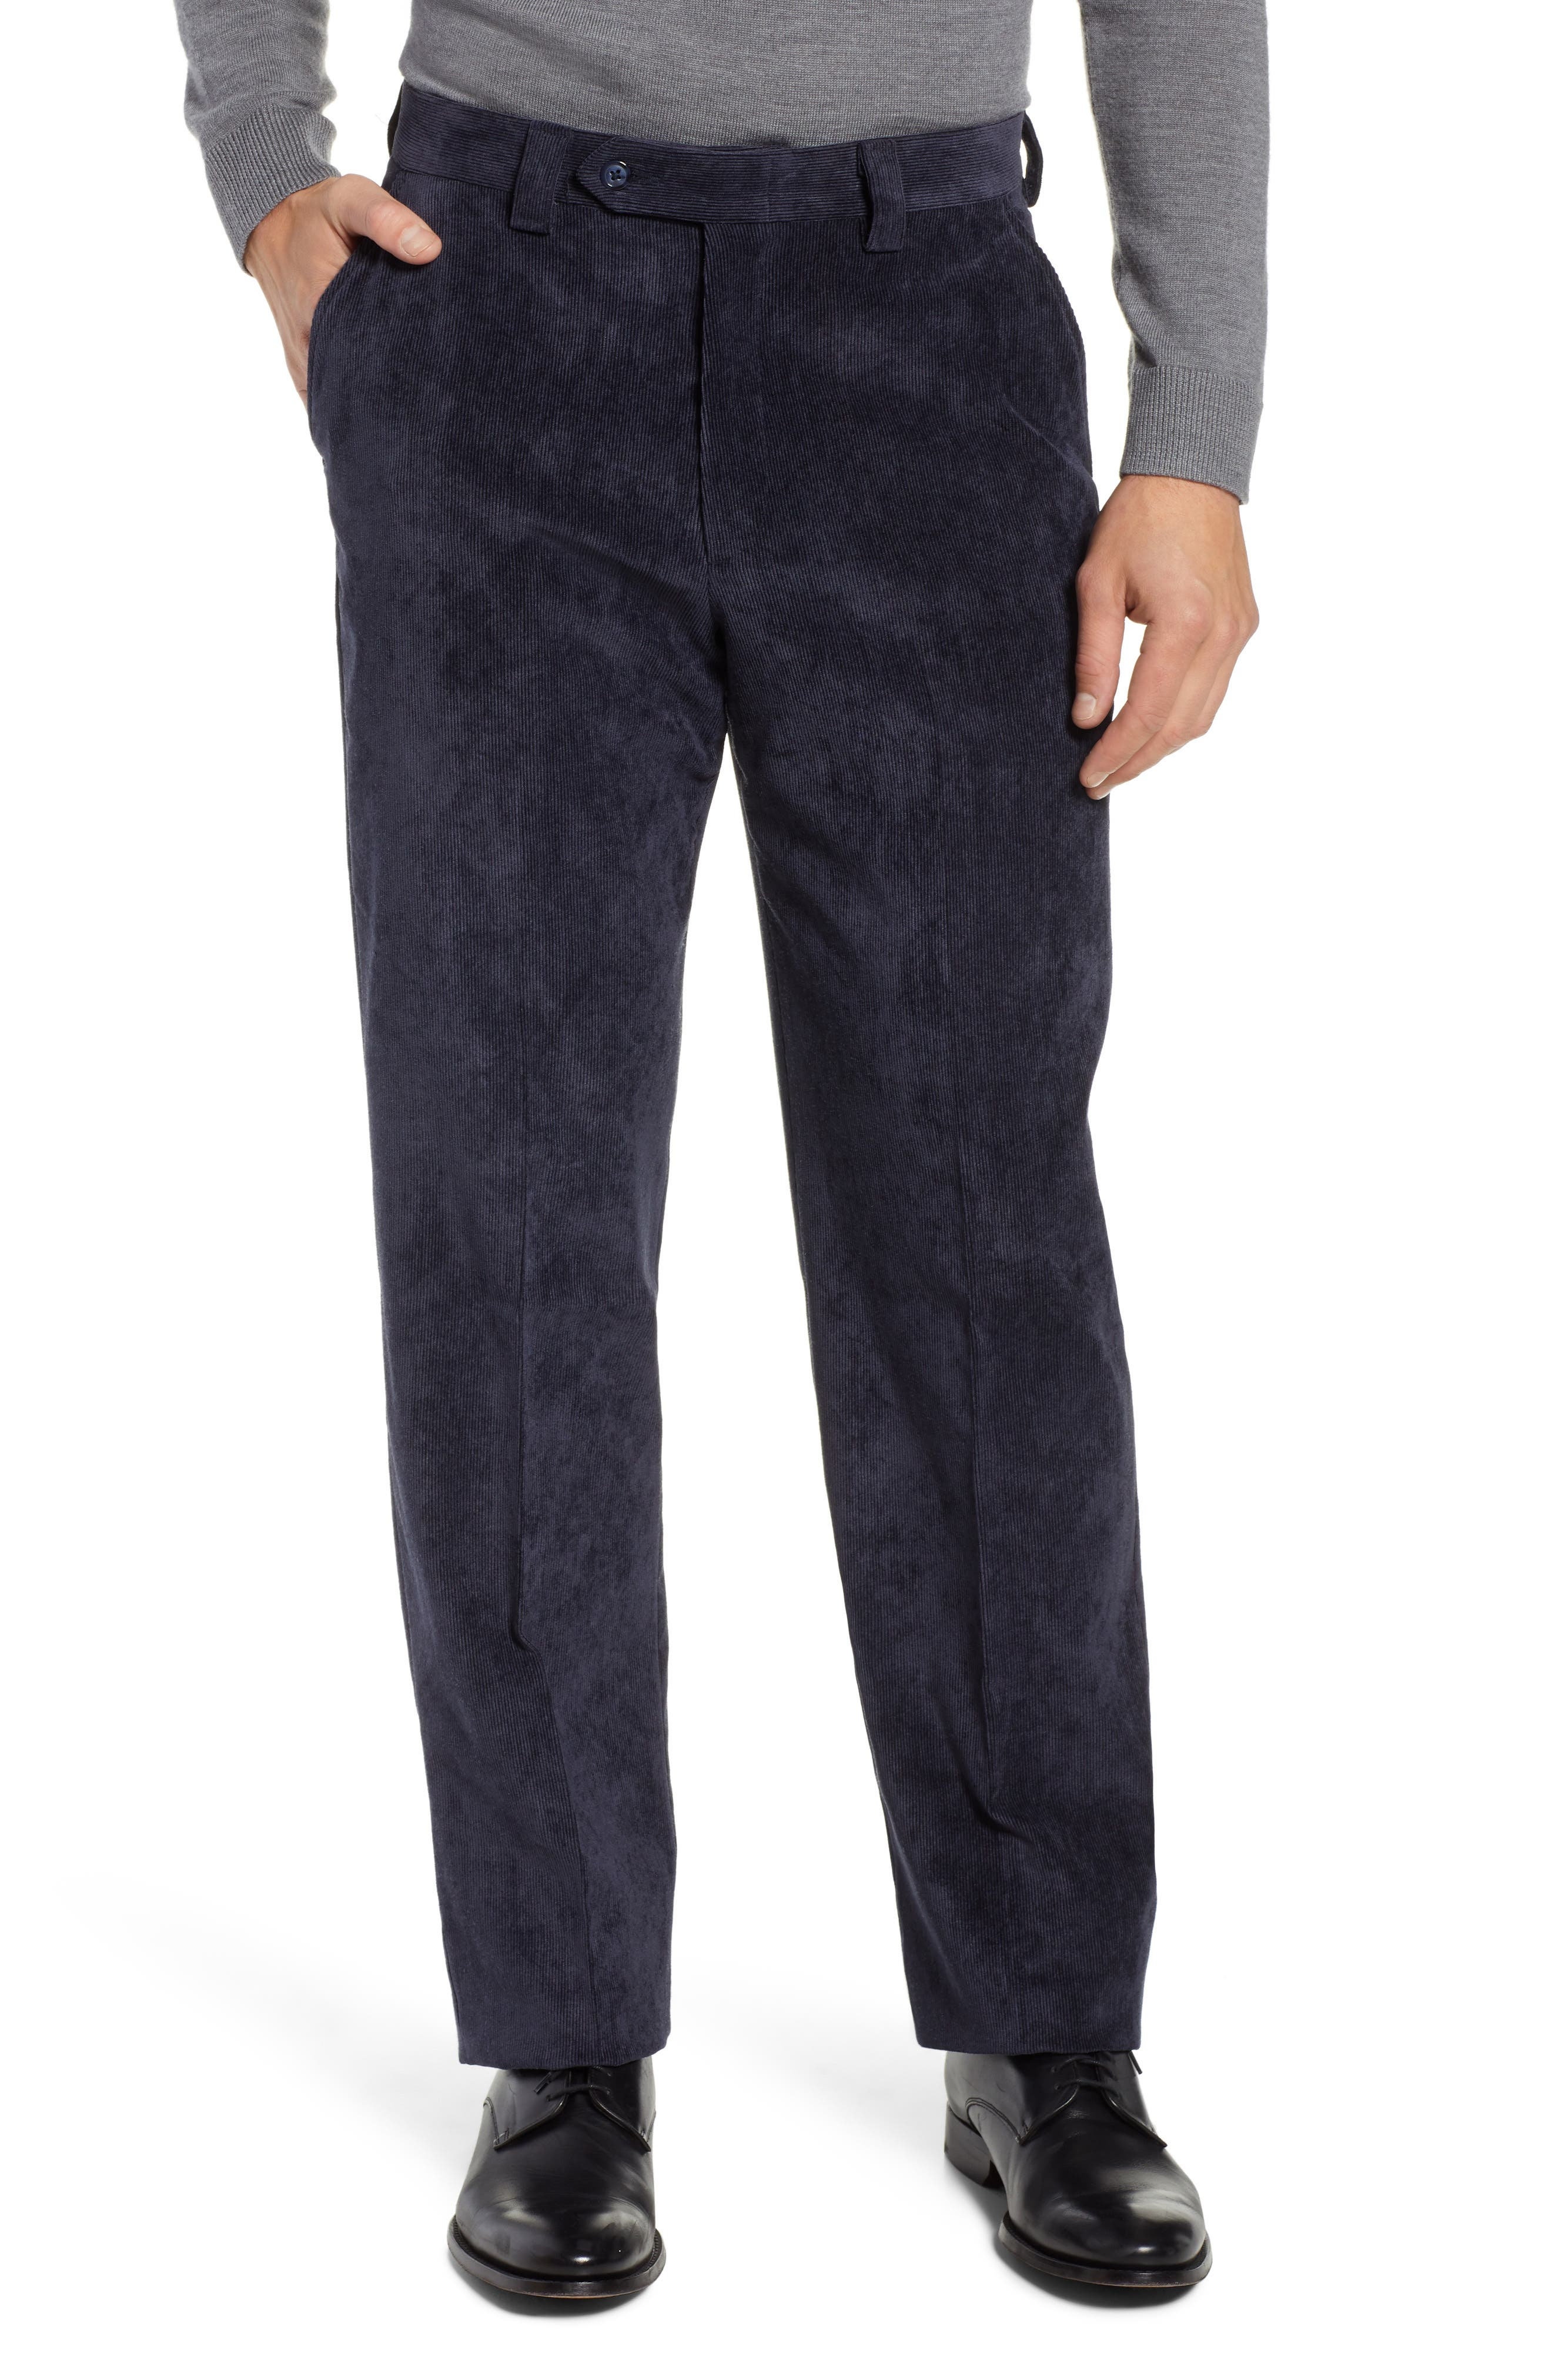 BERLE,                             Classic Fit Flat Front Corduroy Trousers,                             Main thumbnail 1, color,                             410